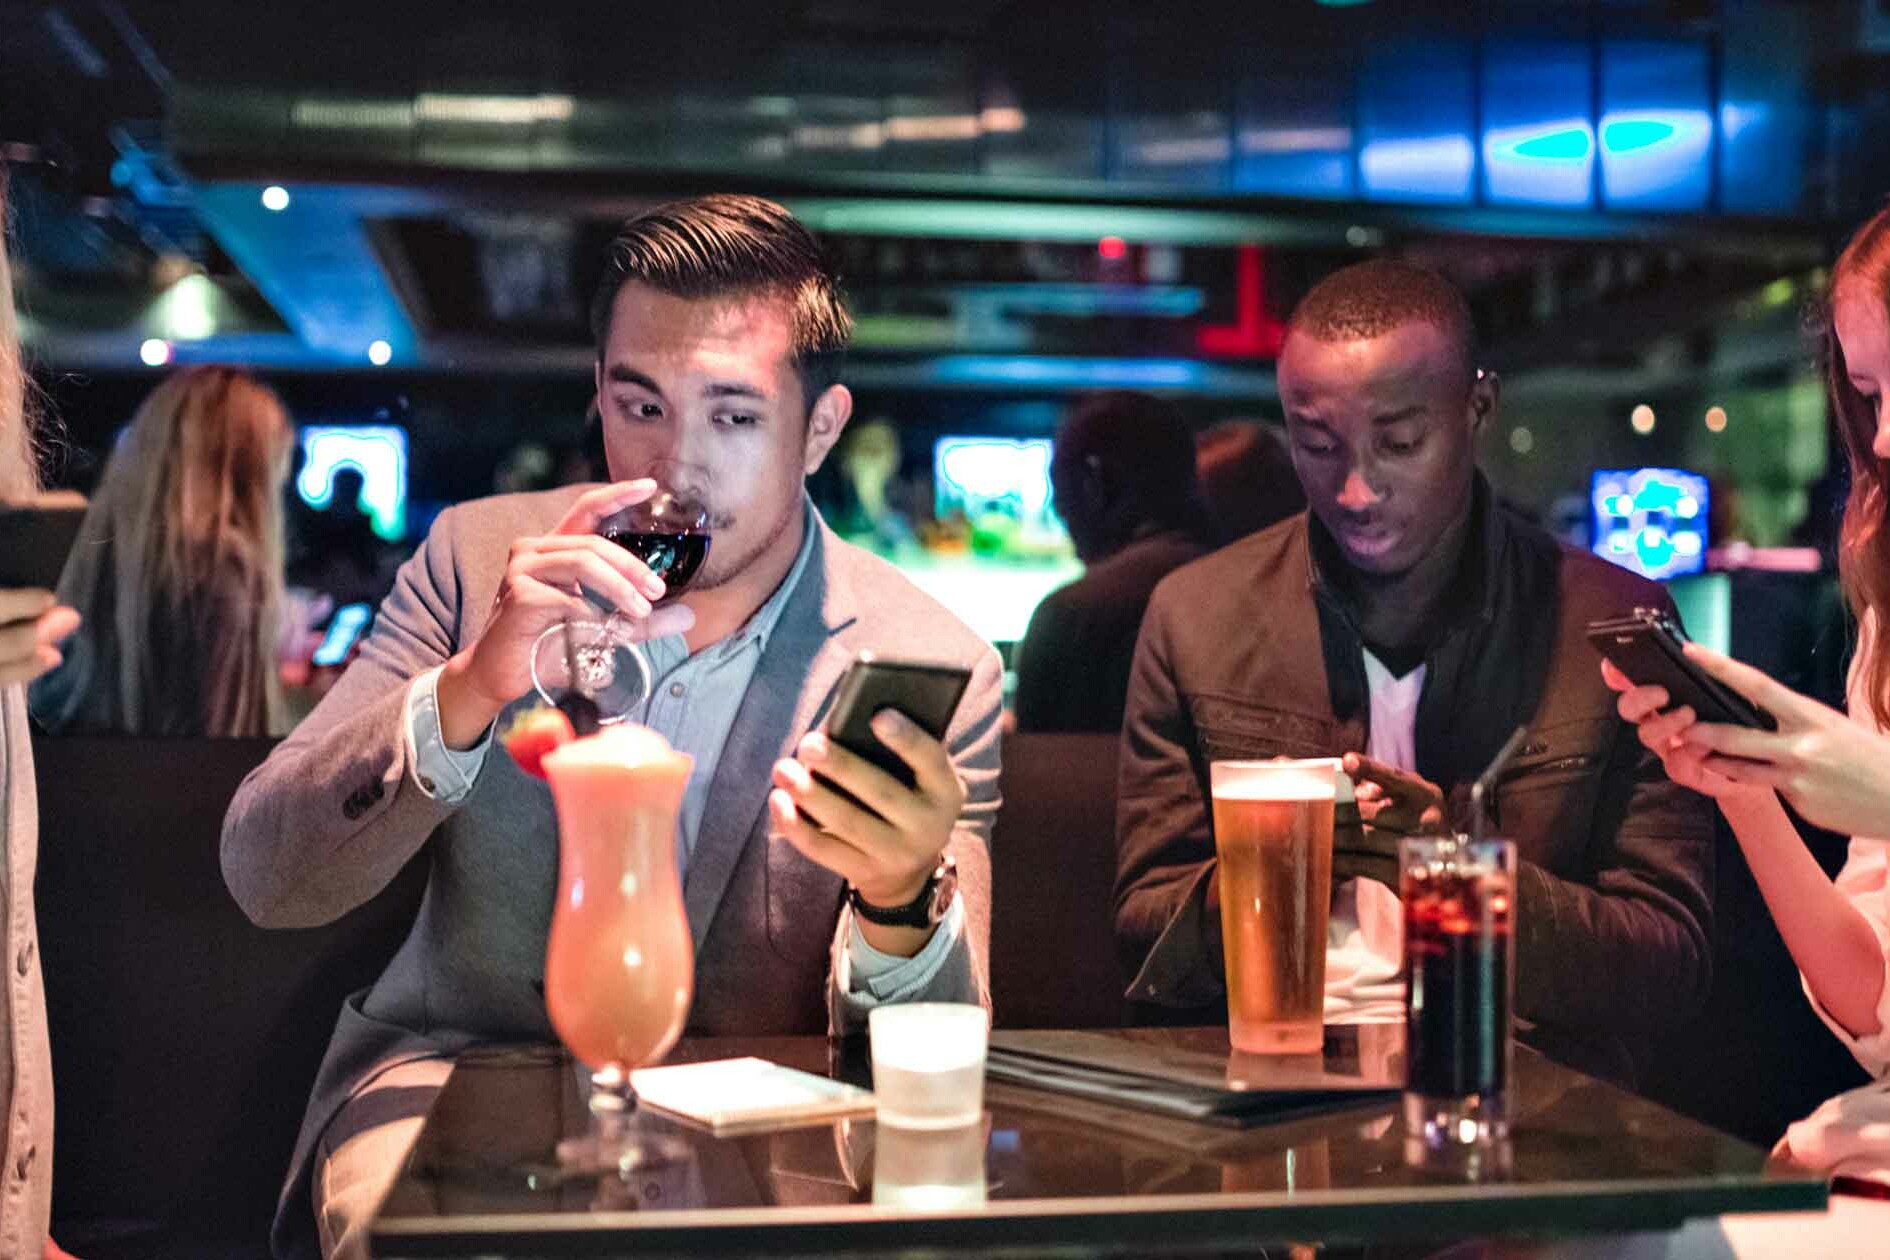 Group of Friends Online Dating in a Bar